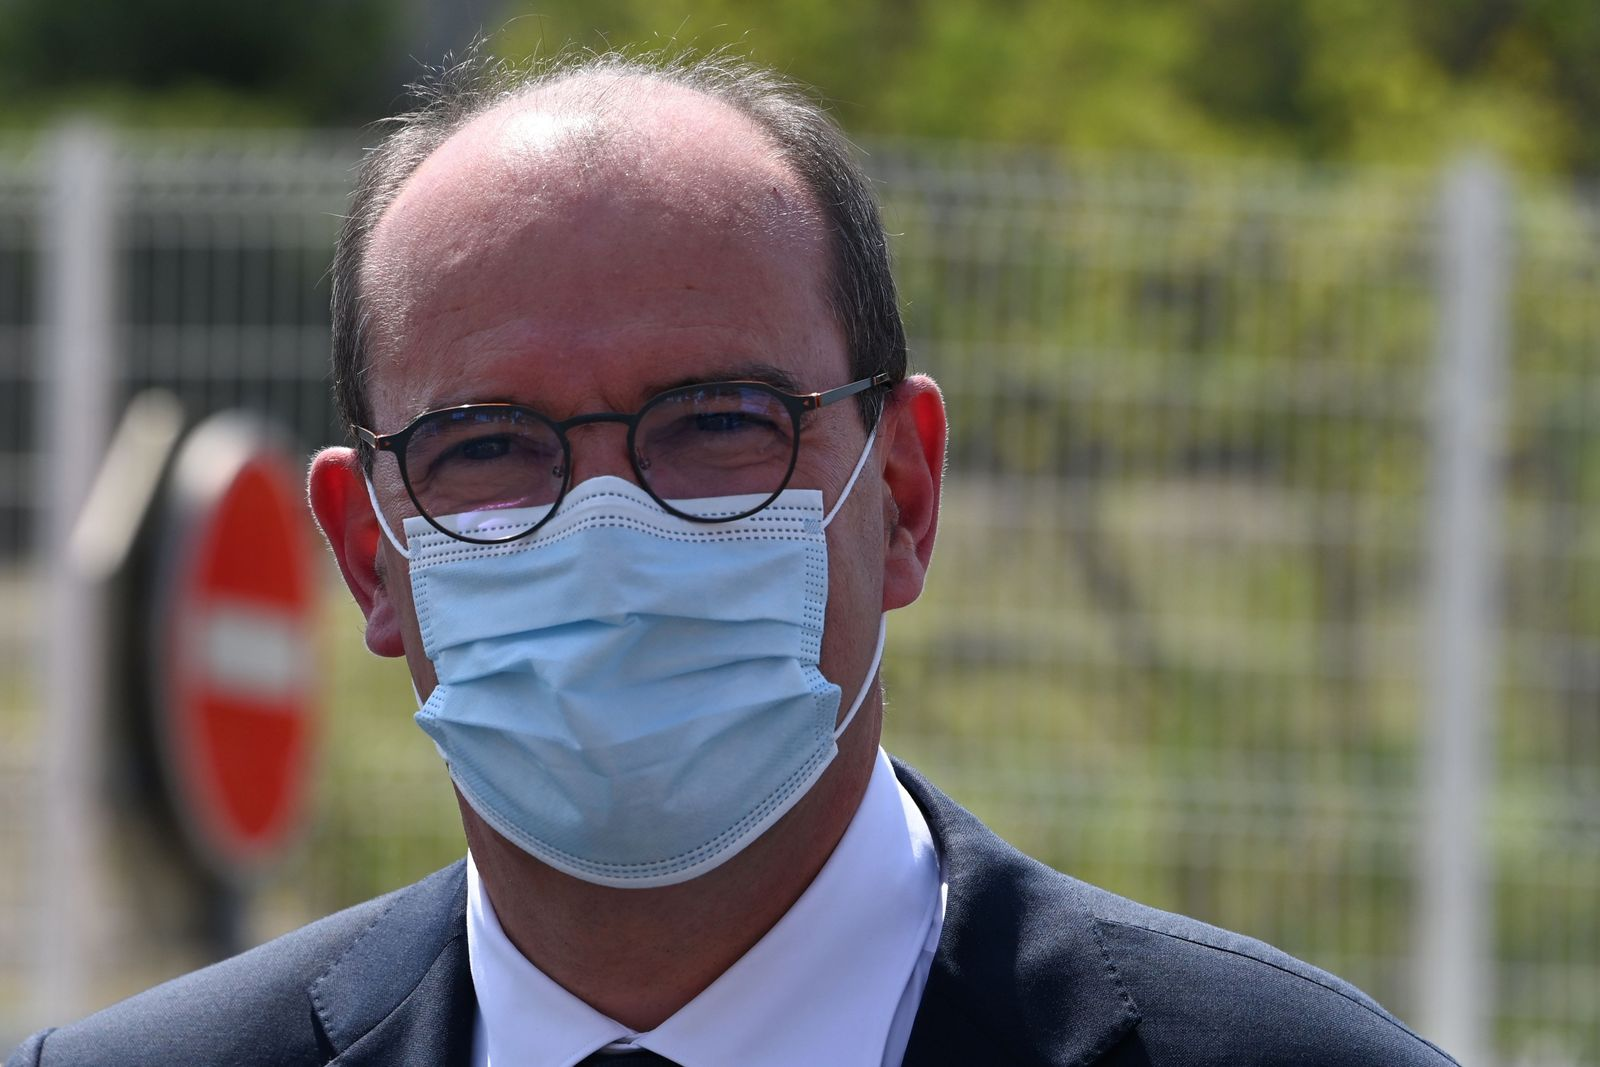 FRANCE-POLITICS-GOVERNMENT-HEALTH-VIRUS